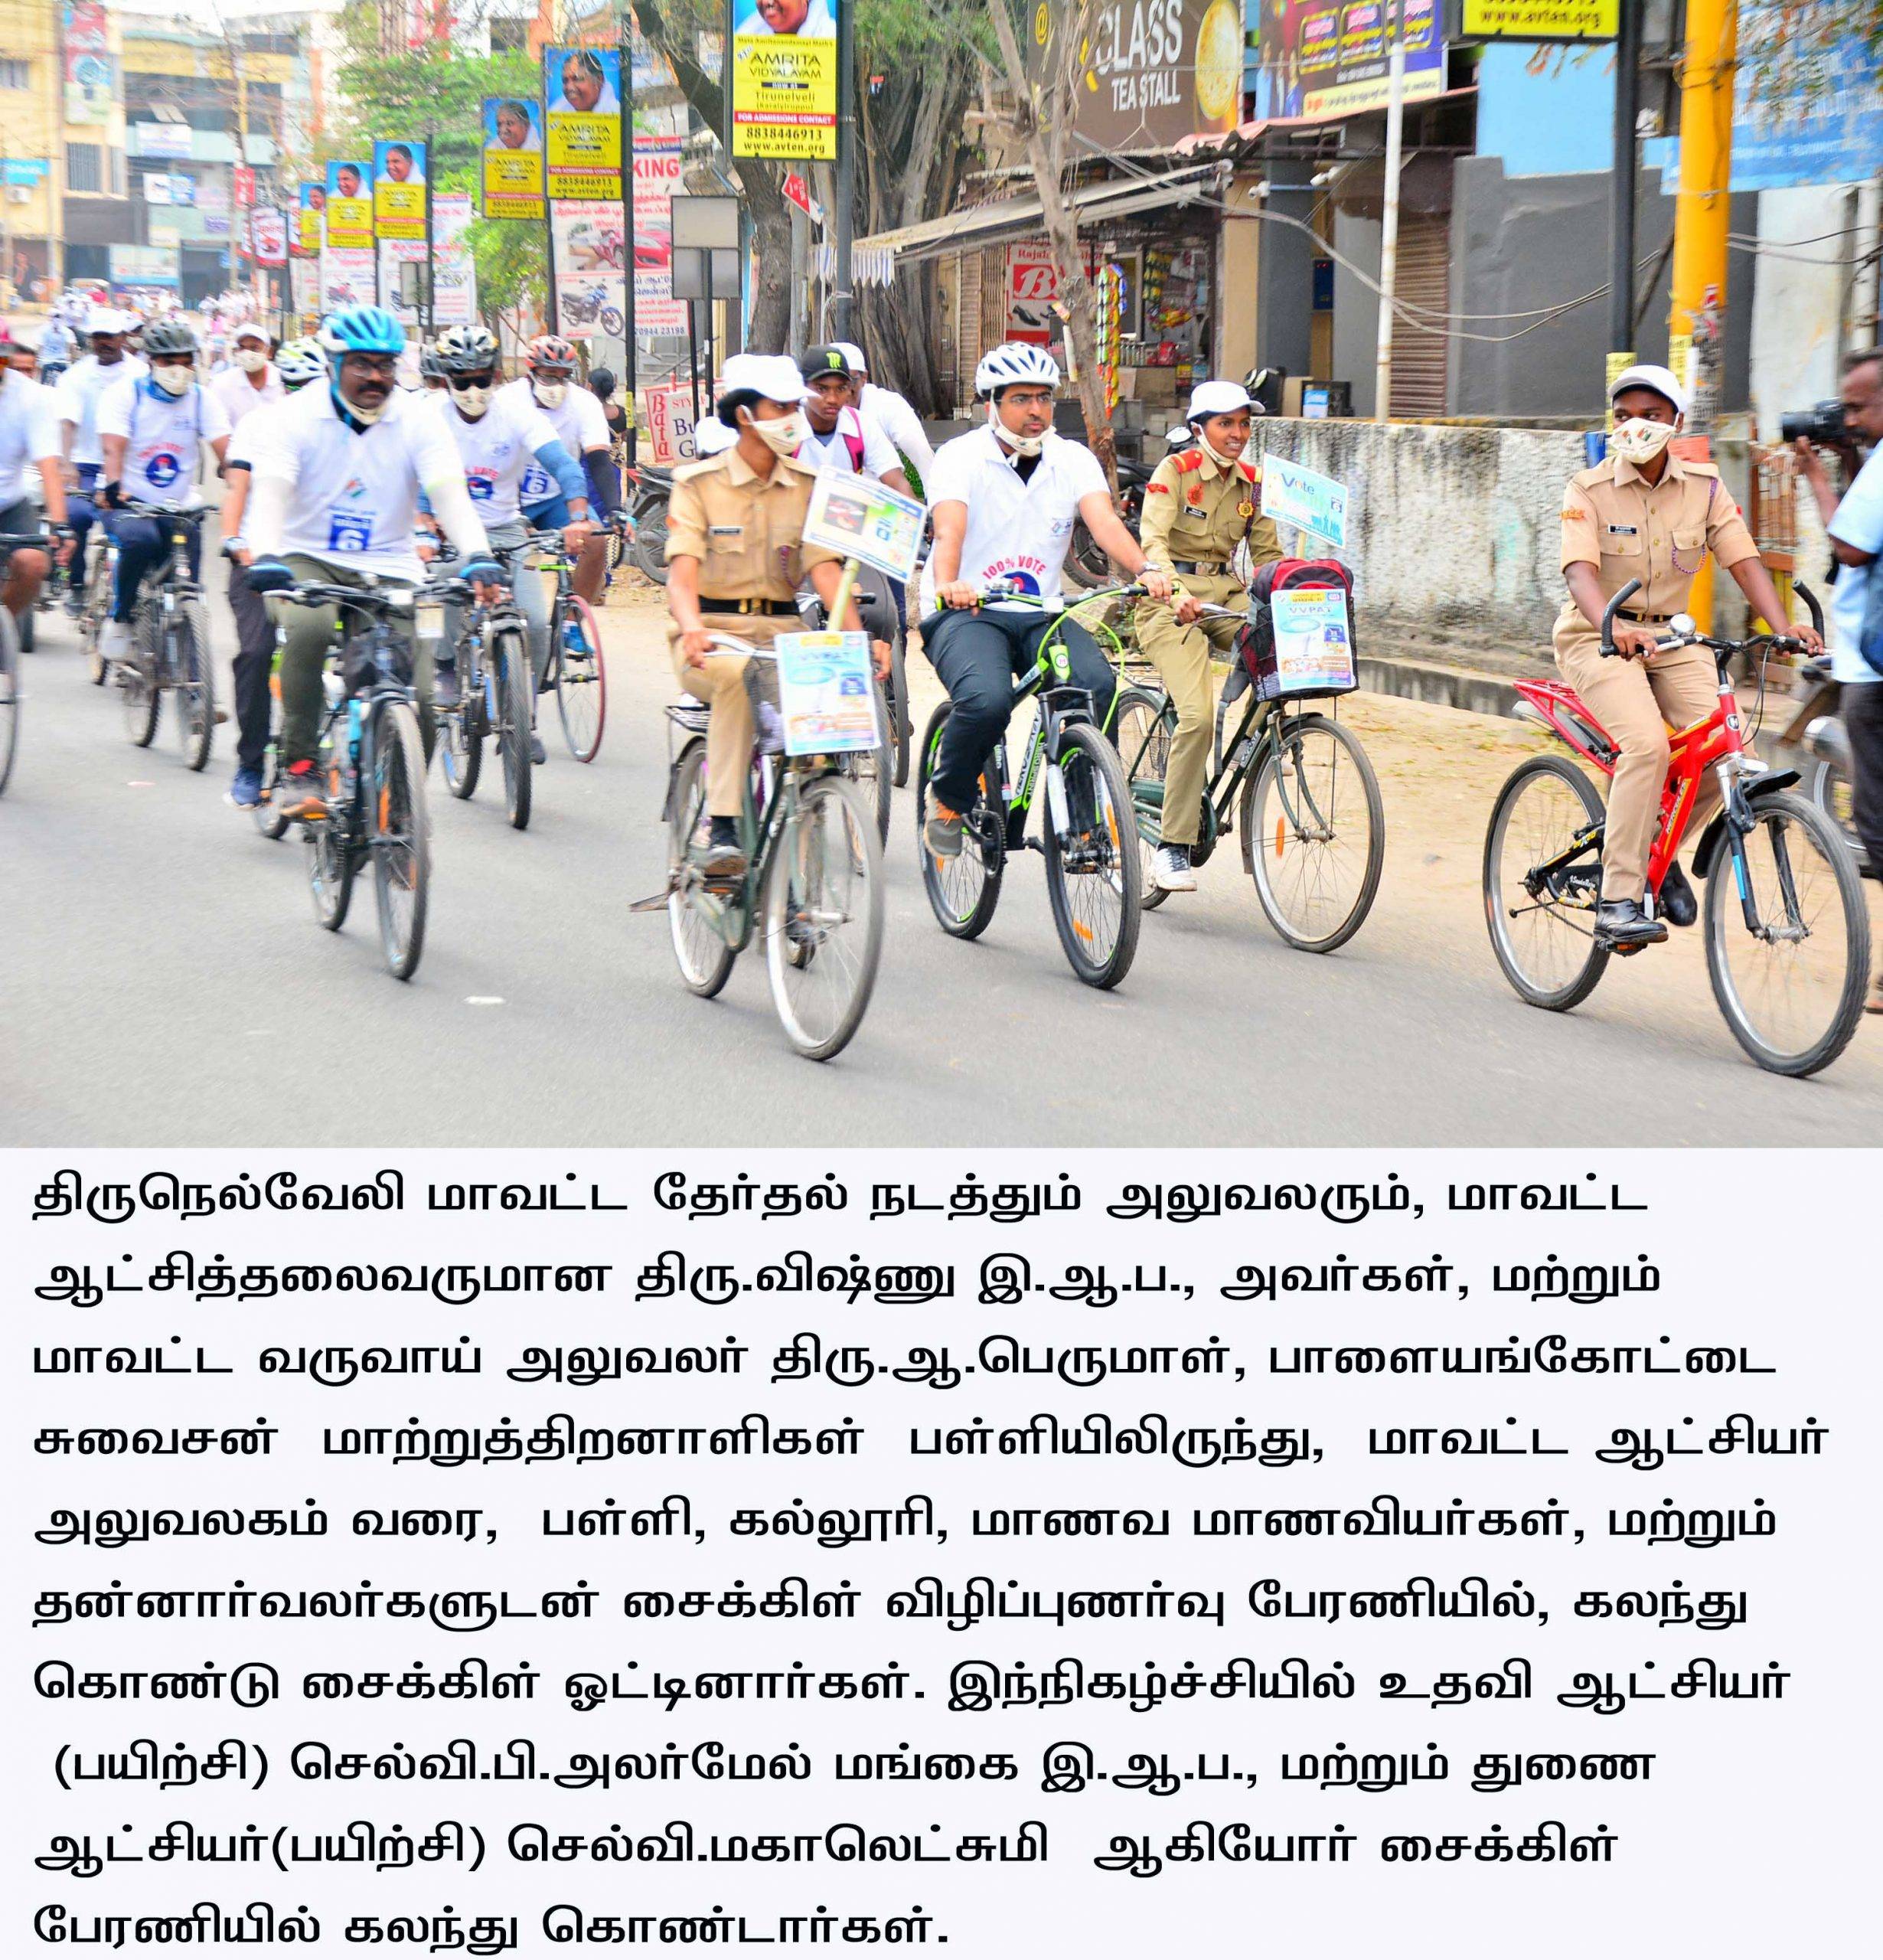 District Collector initiated the awareness programs on 100 percent voting img 1